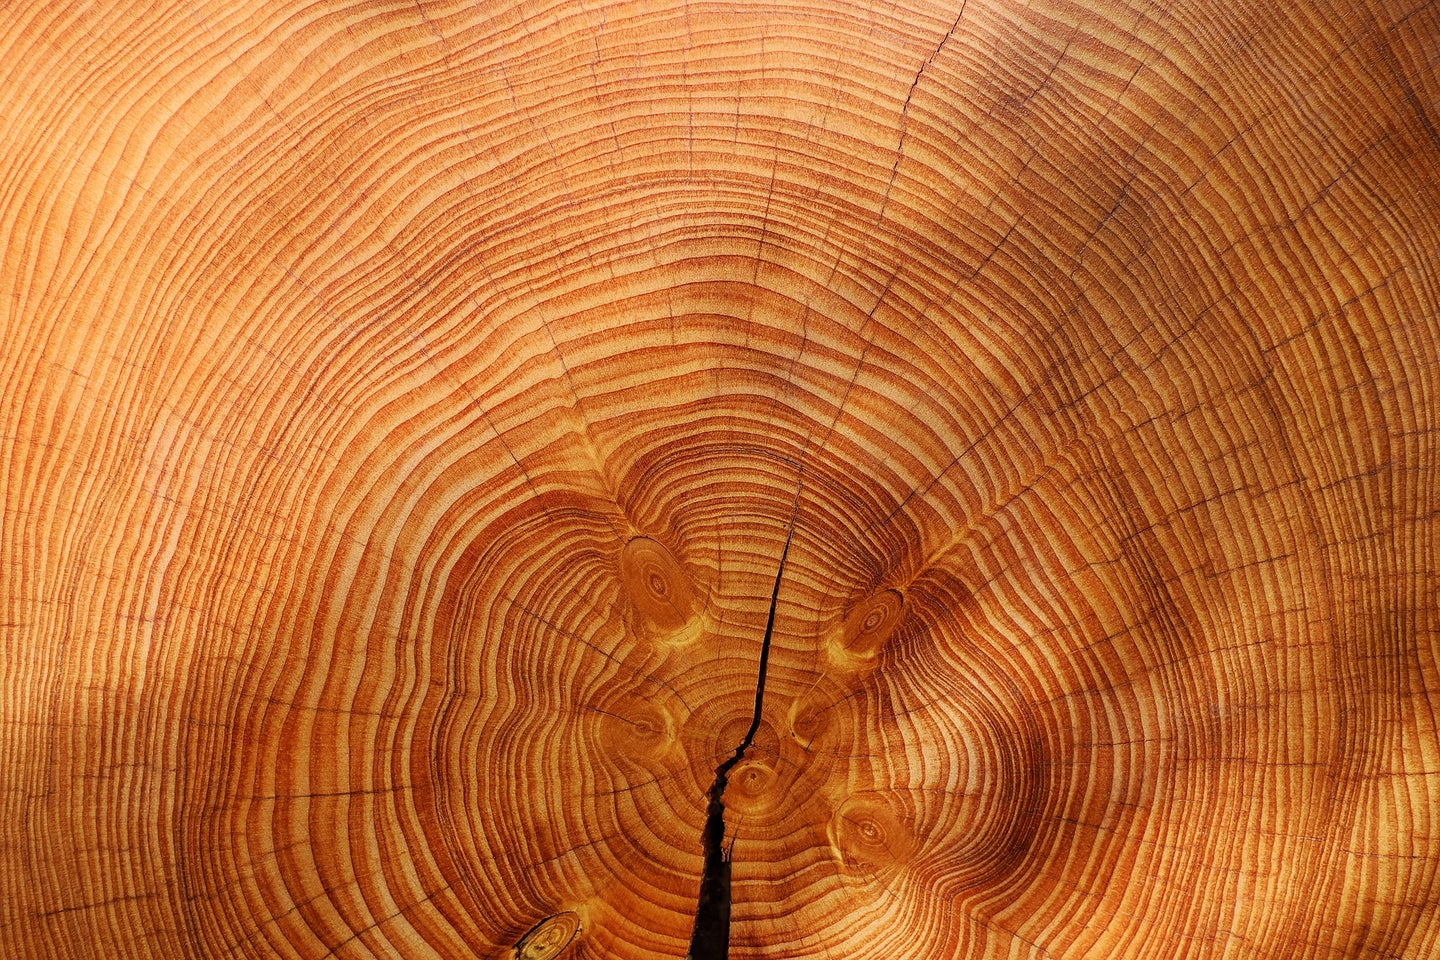 Tree rings contain secrets from the forest